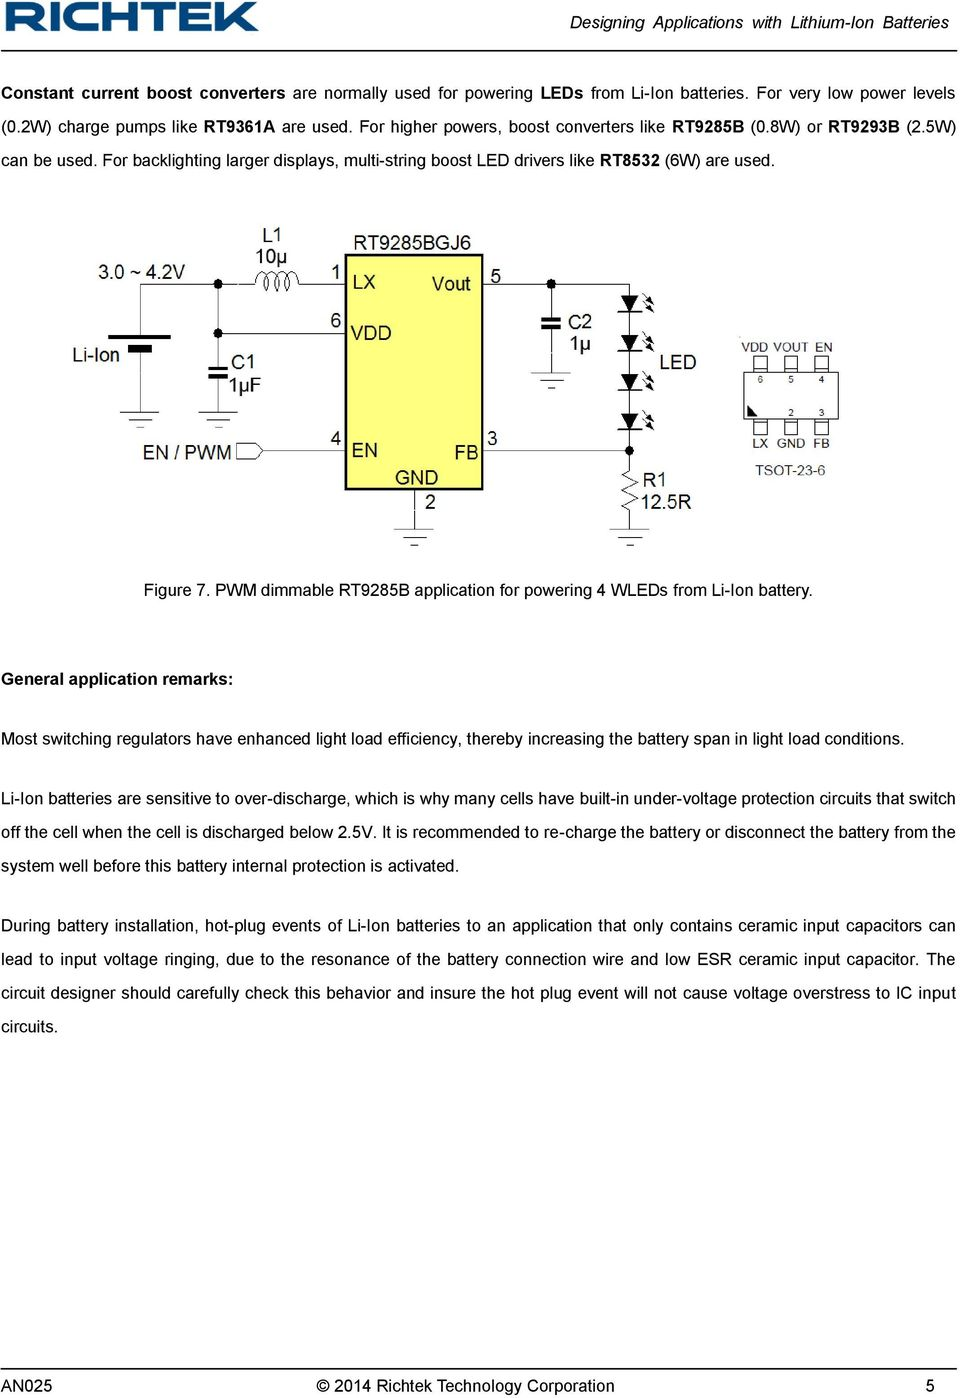 PWM dimmable RT9285B application for powering 4 WLEDs from Li-Ion battery.